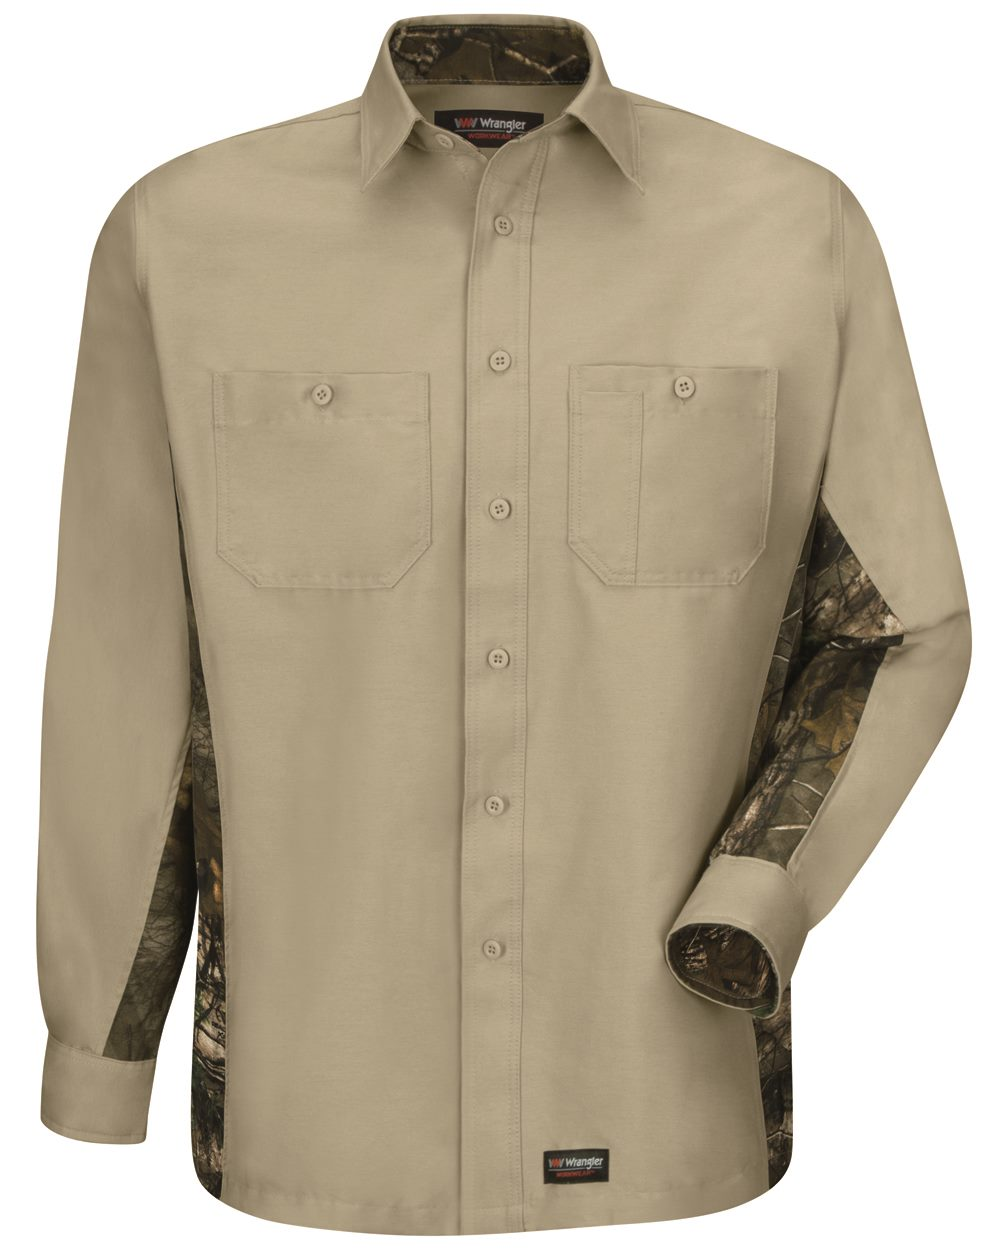 Wrangler WS30 - Workwear Long Sleeve Camo Shirt